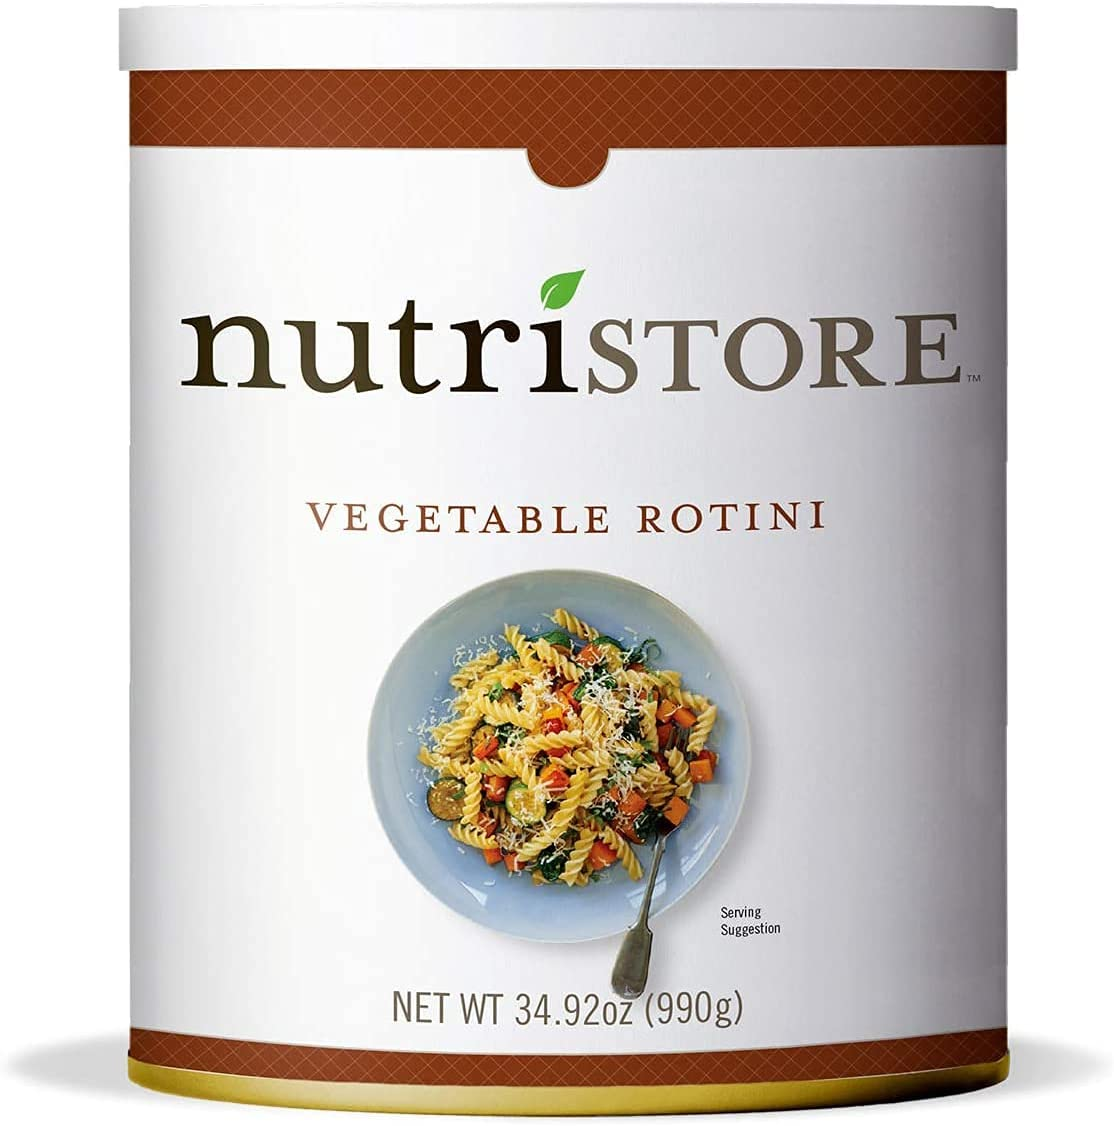 Nutristore Vegetable Rotini #10 Can   Premium Variety Ready to Eat Meals   Bulk Emergency Food Supply   Breakfast, Lunch, Dinner   MRE   Long Term Survival Storage   25 Year Shelf Life